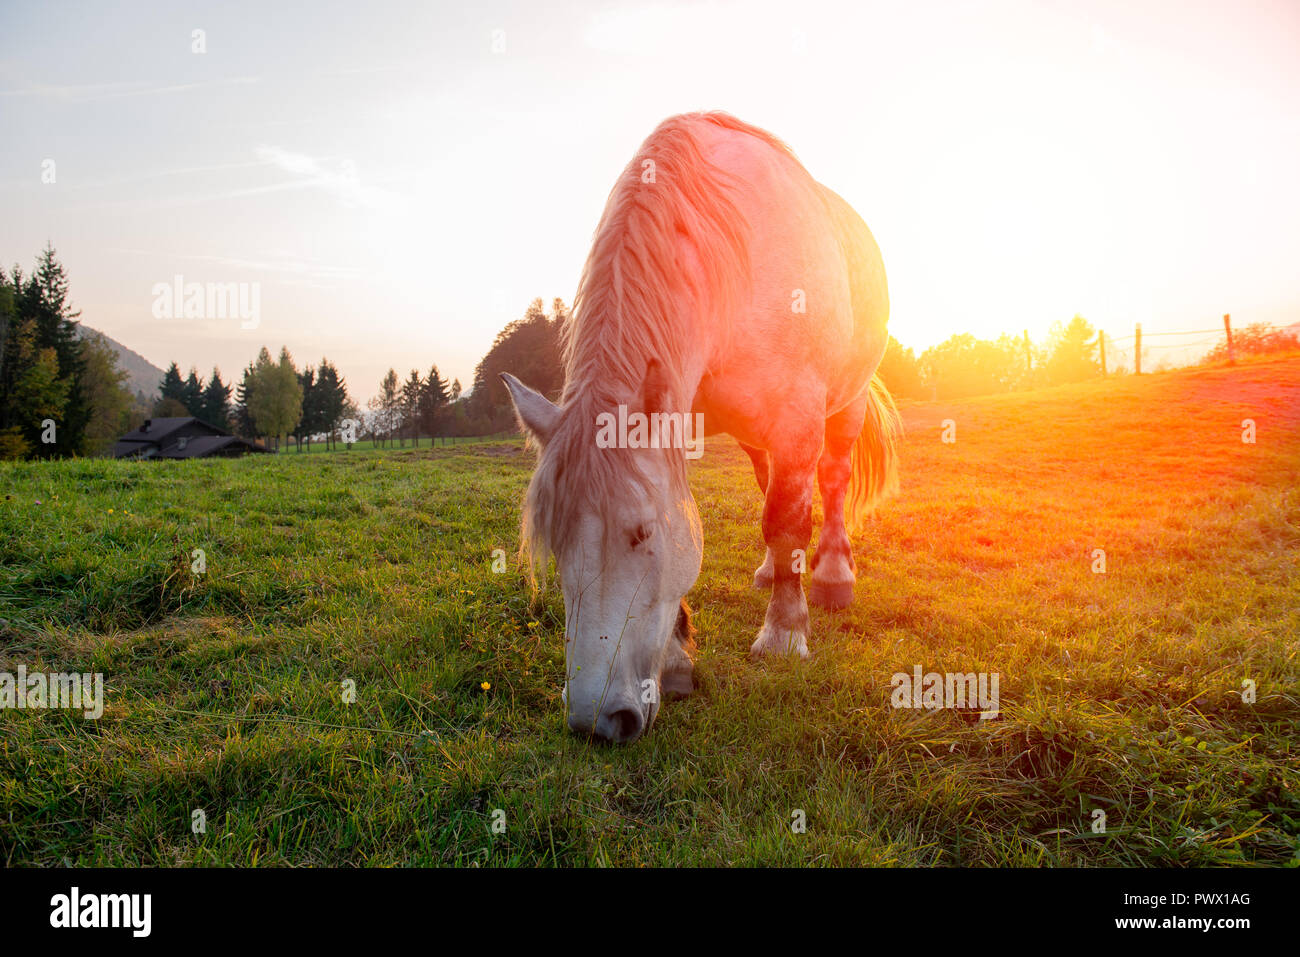 horses That past freedom at sunset - Stock Image